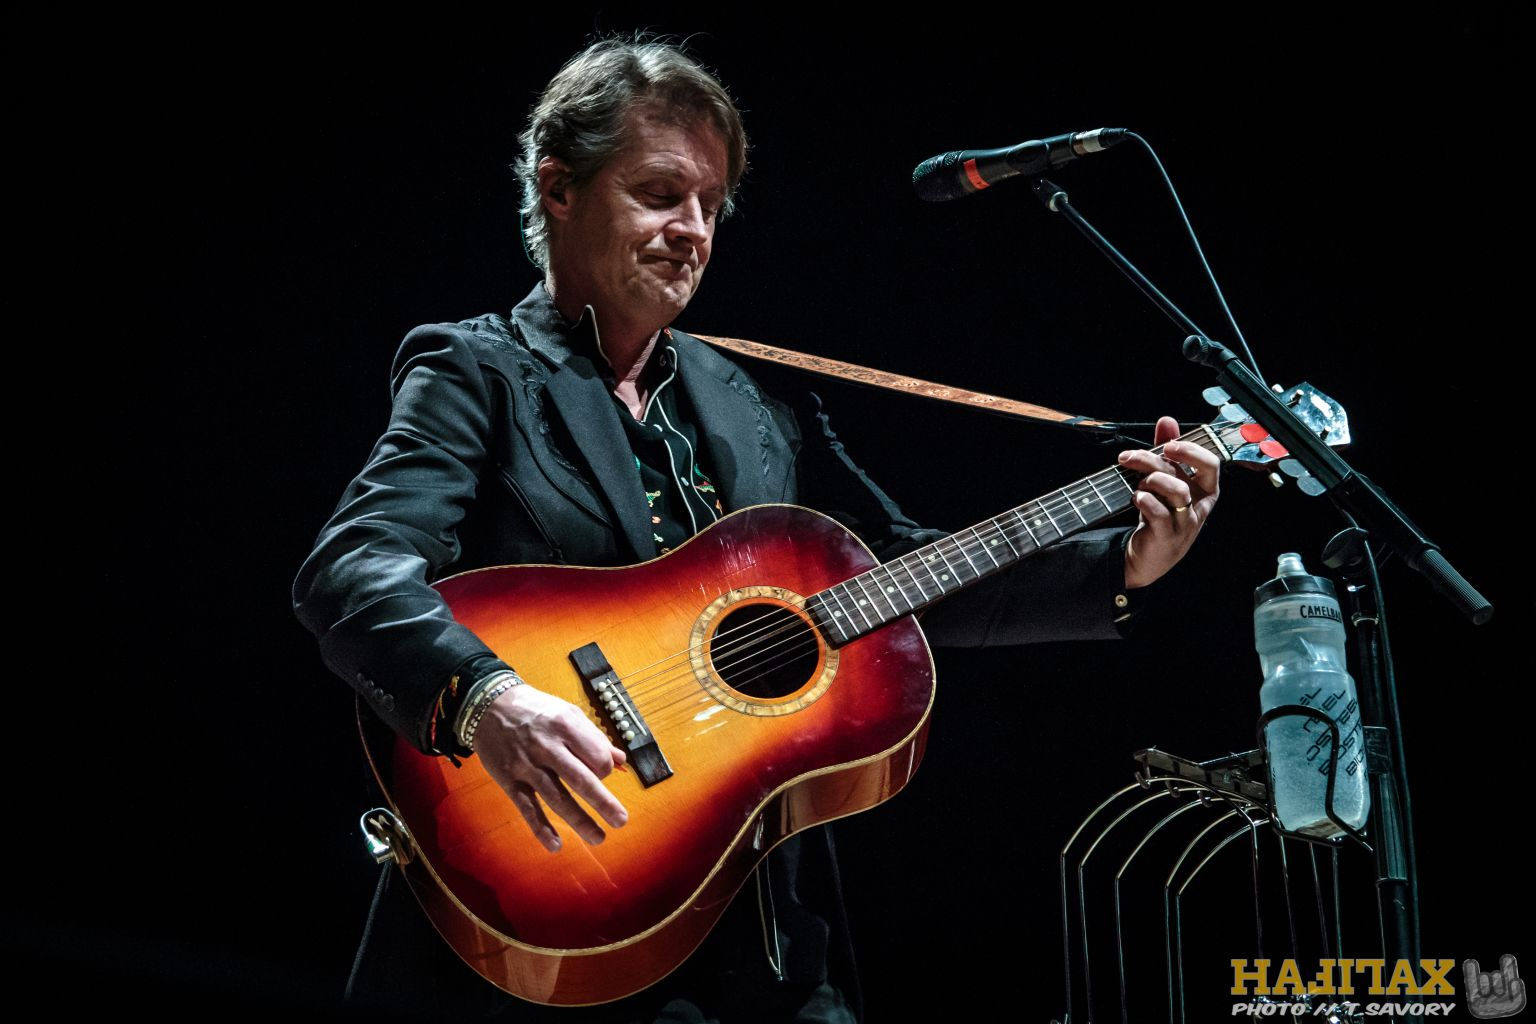 Show Shots Amp Thoughts The Jim Cuddy Band The Cohn